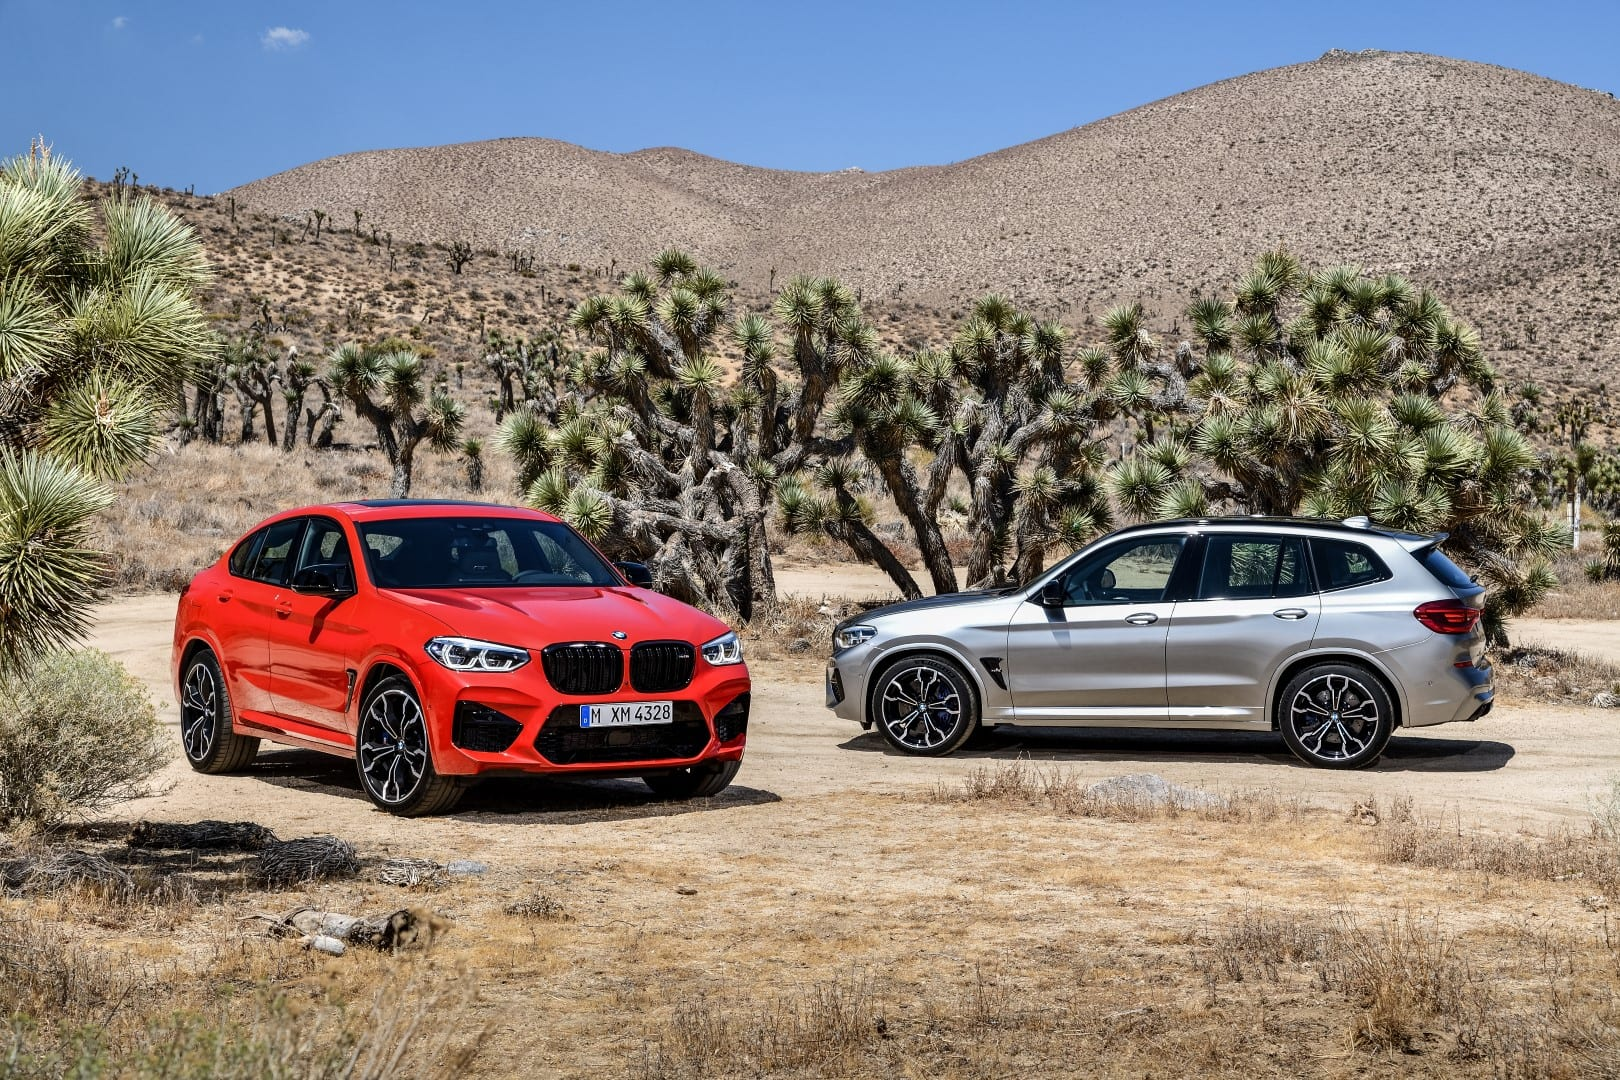 bmw x3 m and x4 m omfg just die already